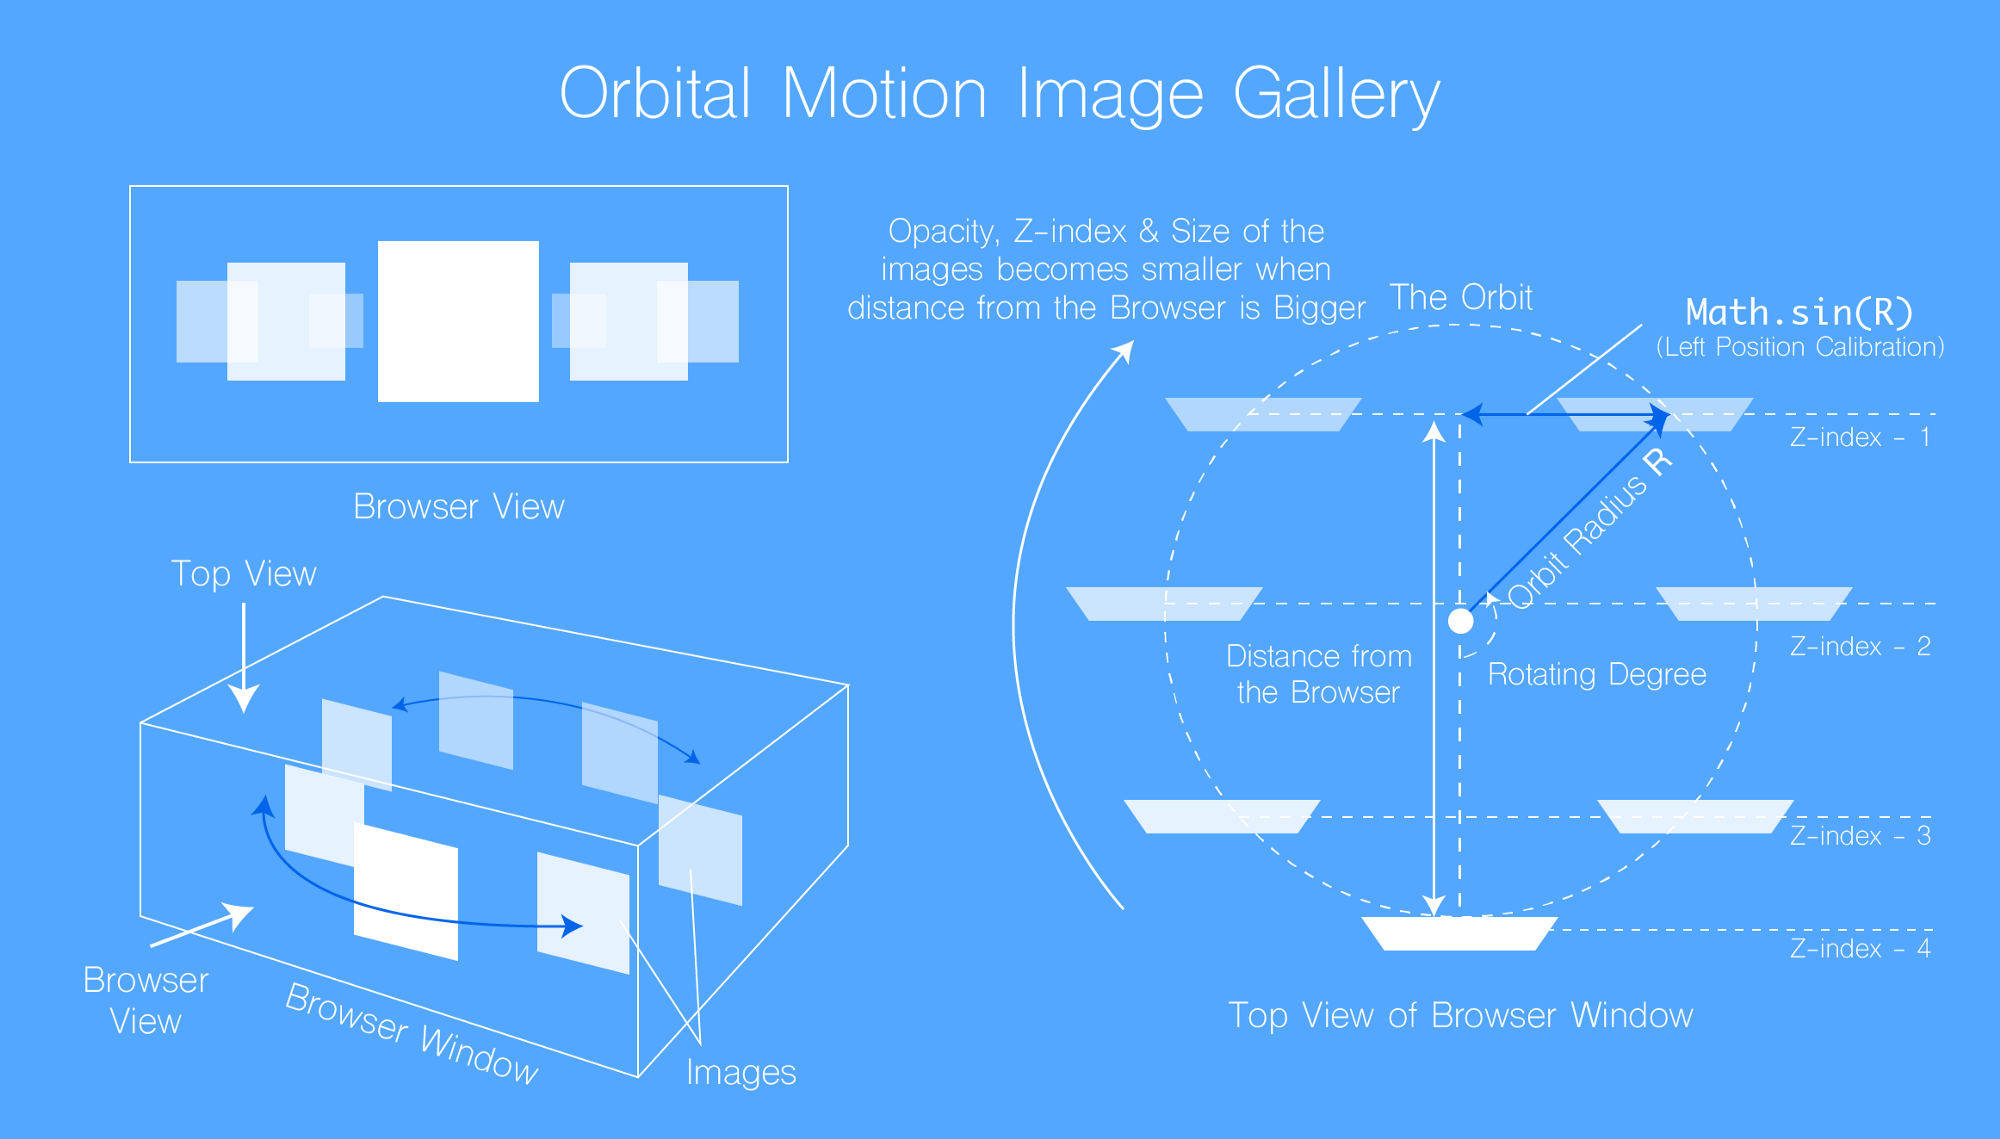 Structure of the Orbital Image Gallery